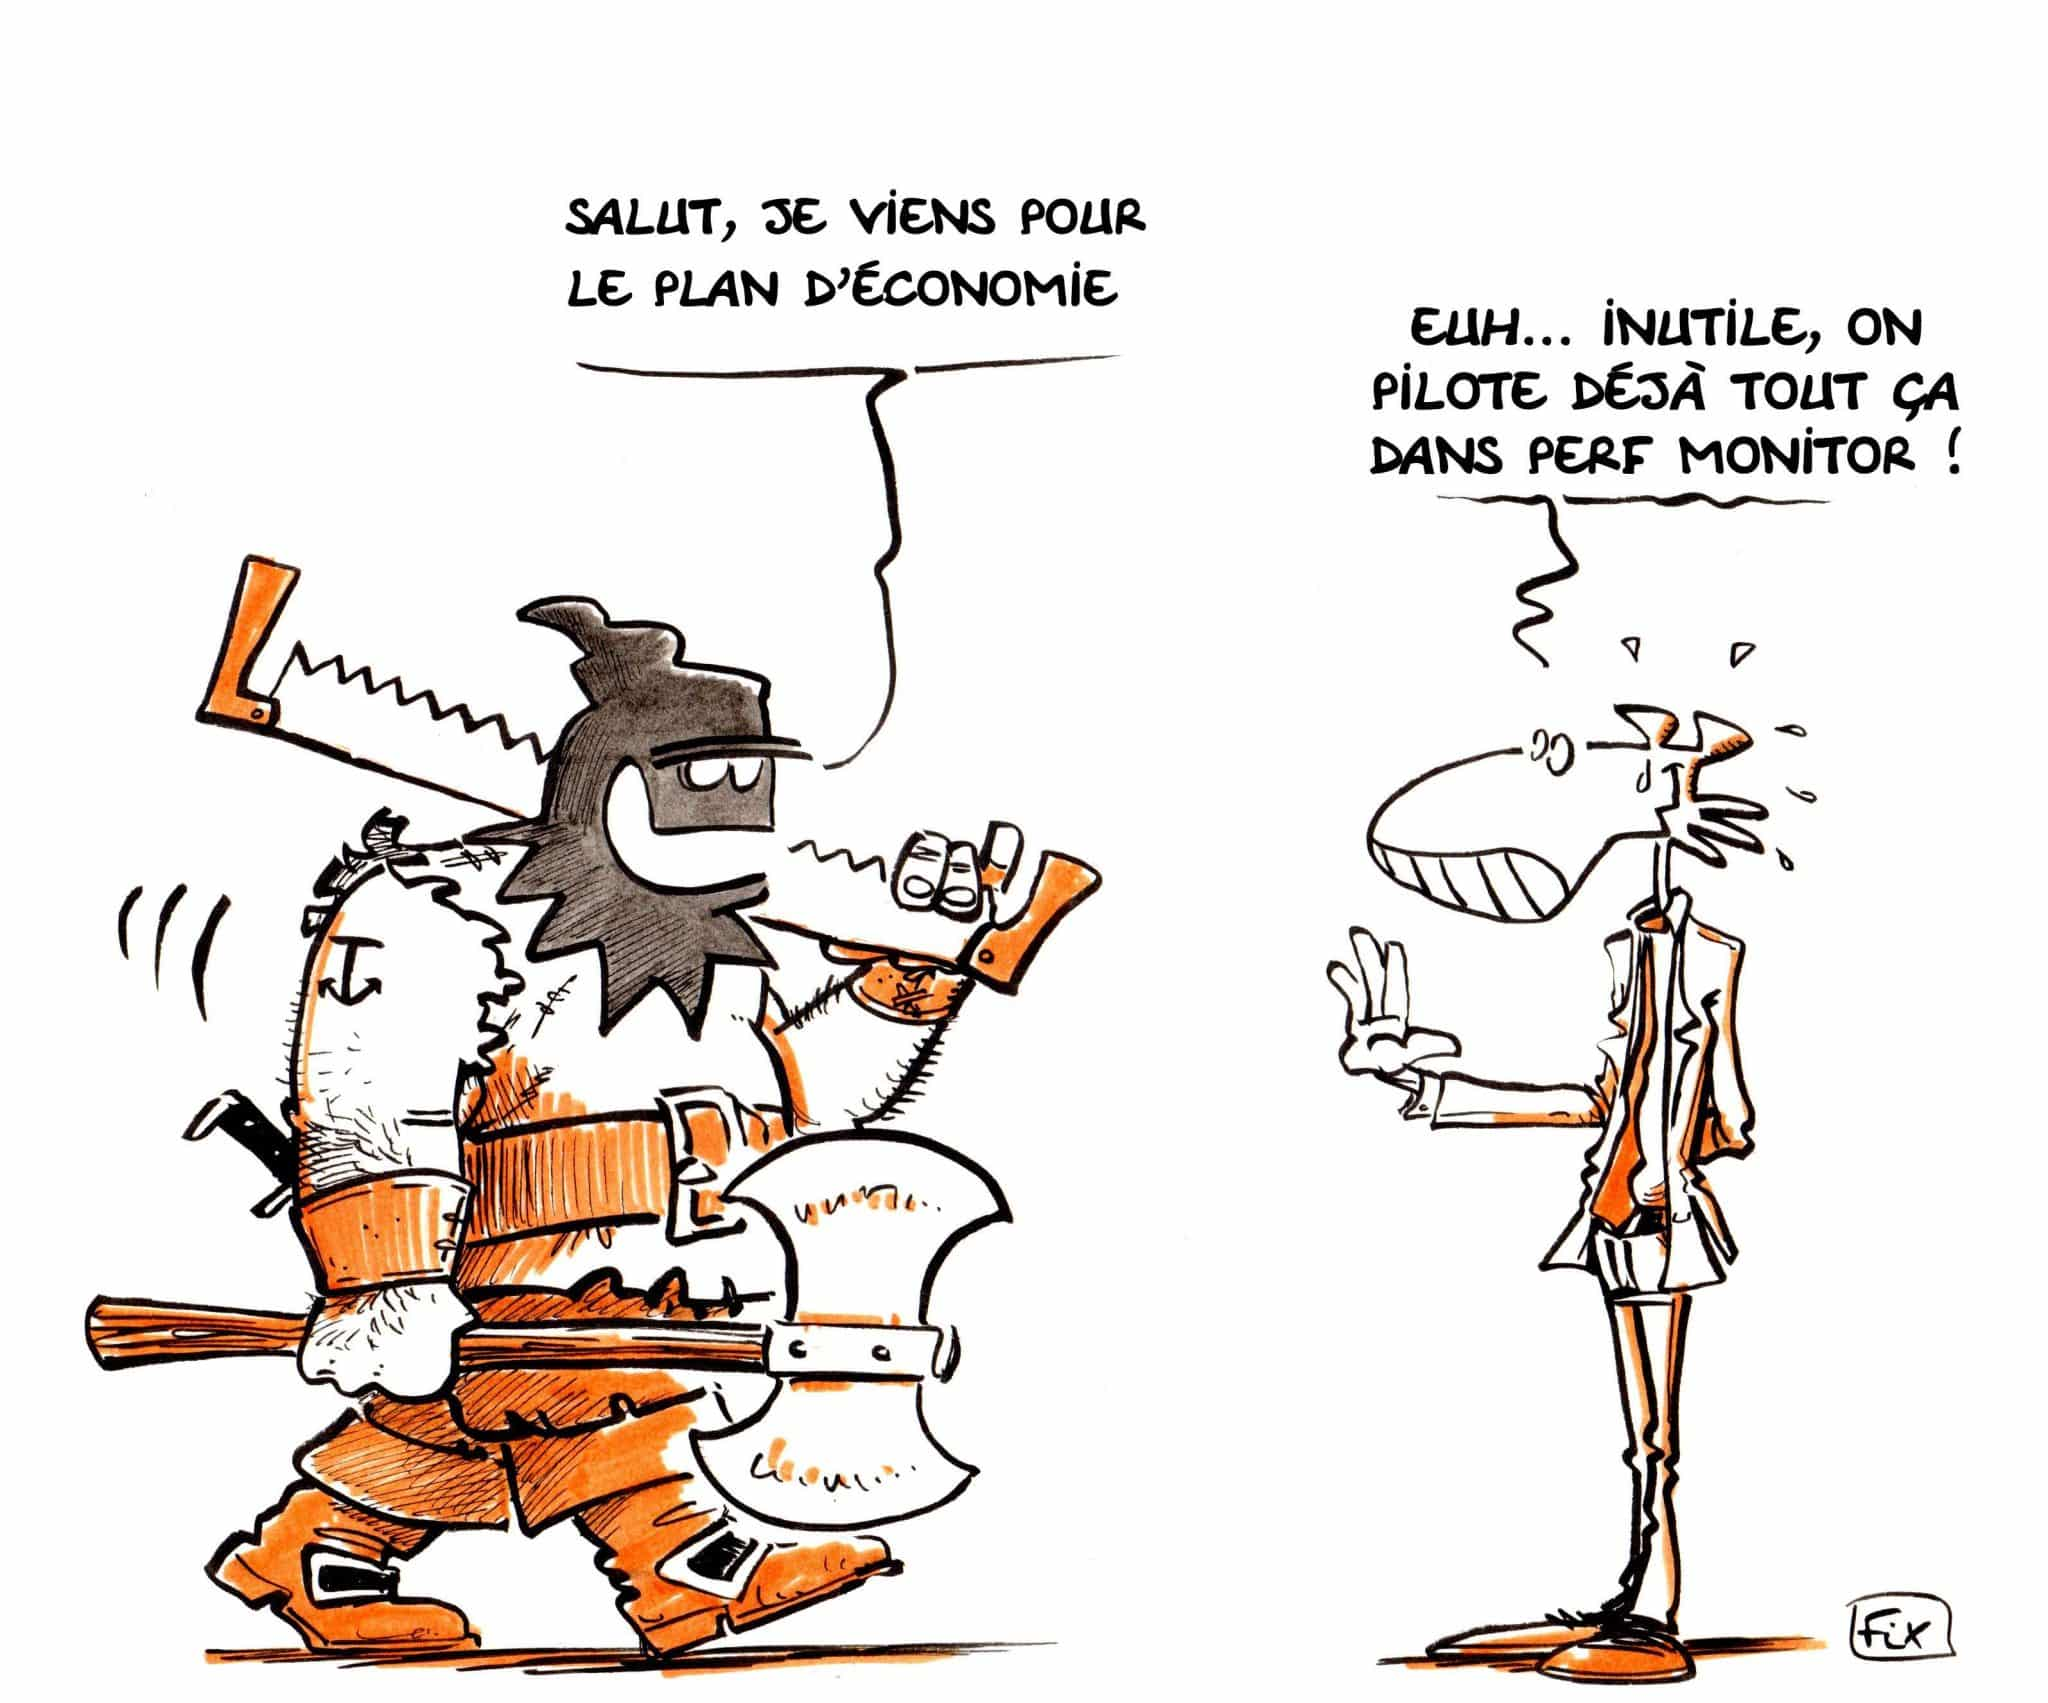 Plan d'économie - Perf Monitor - Fix - caricature - novembre - virage group